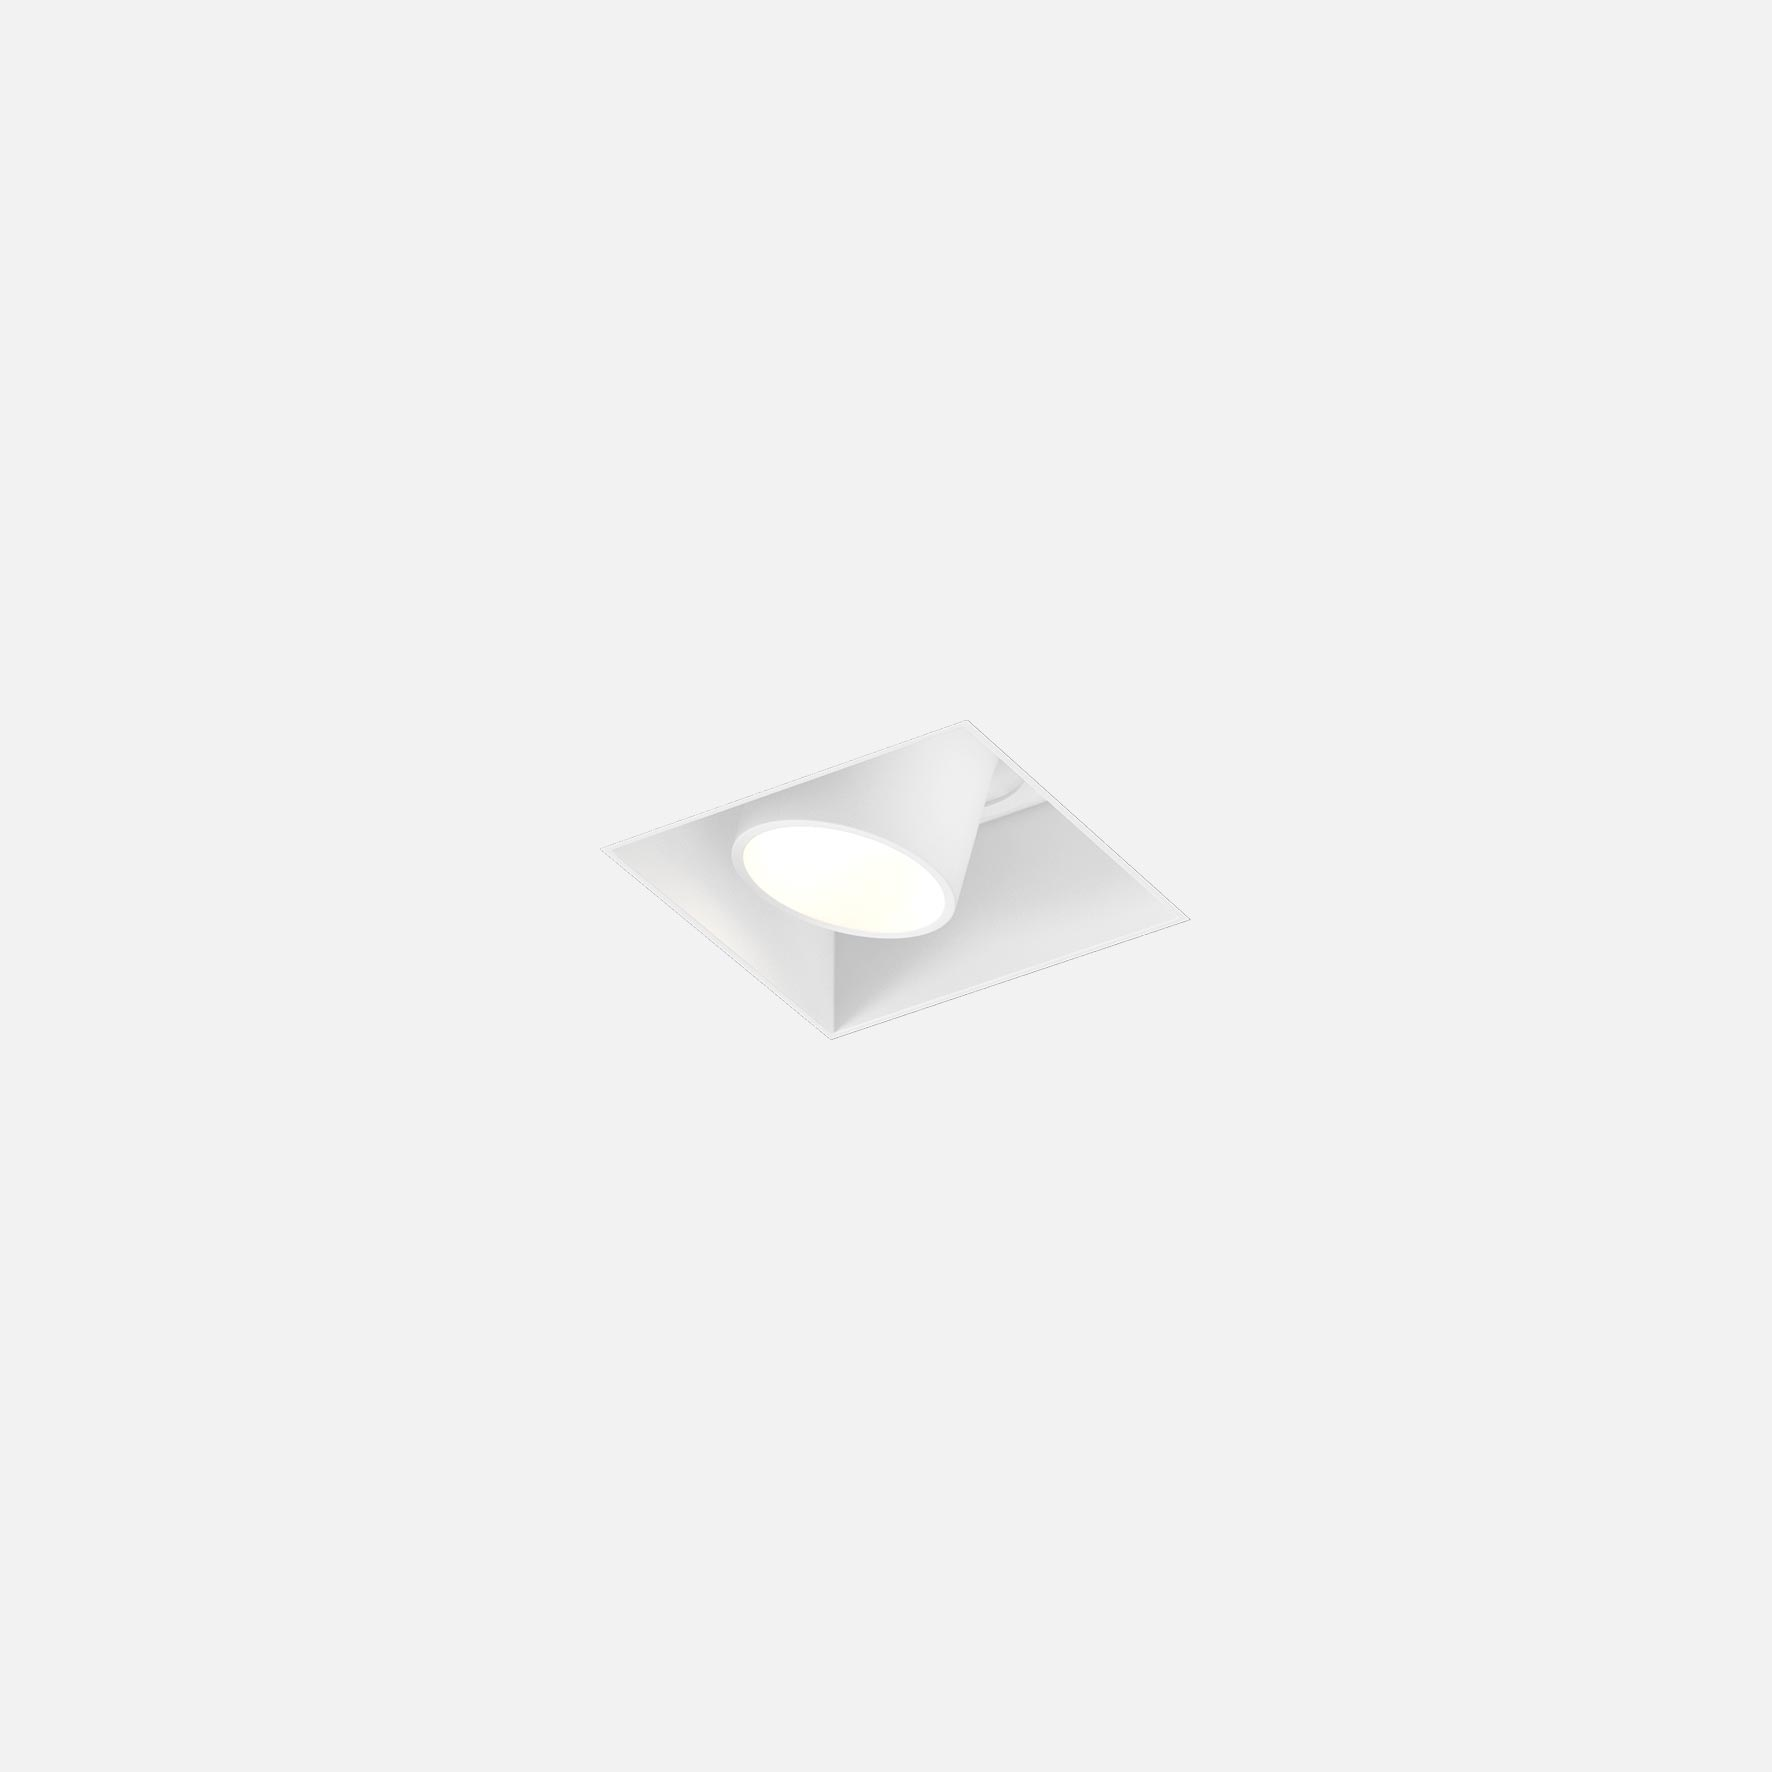 Sneak trimless 1.0 led white texture 1800 2850